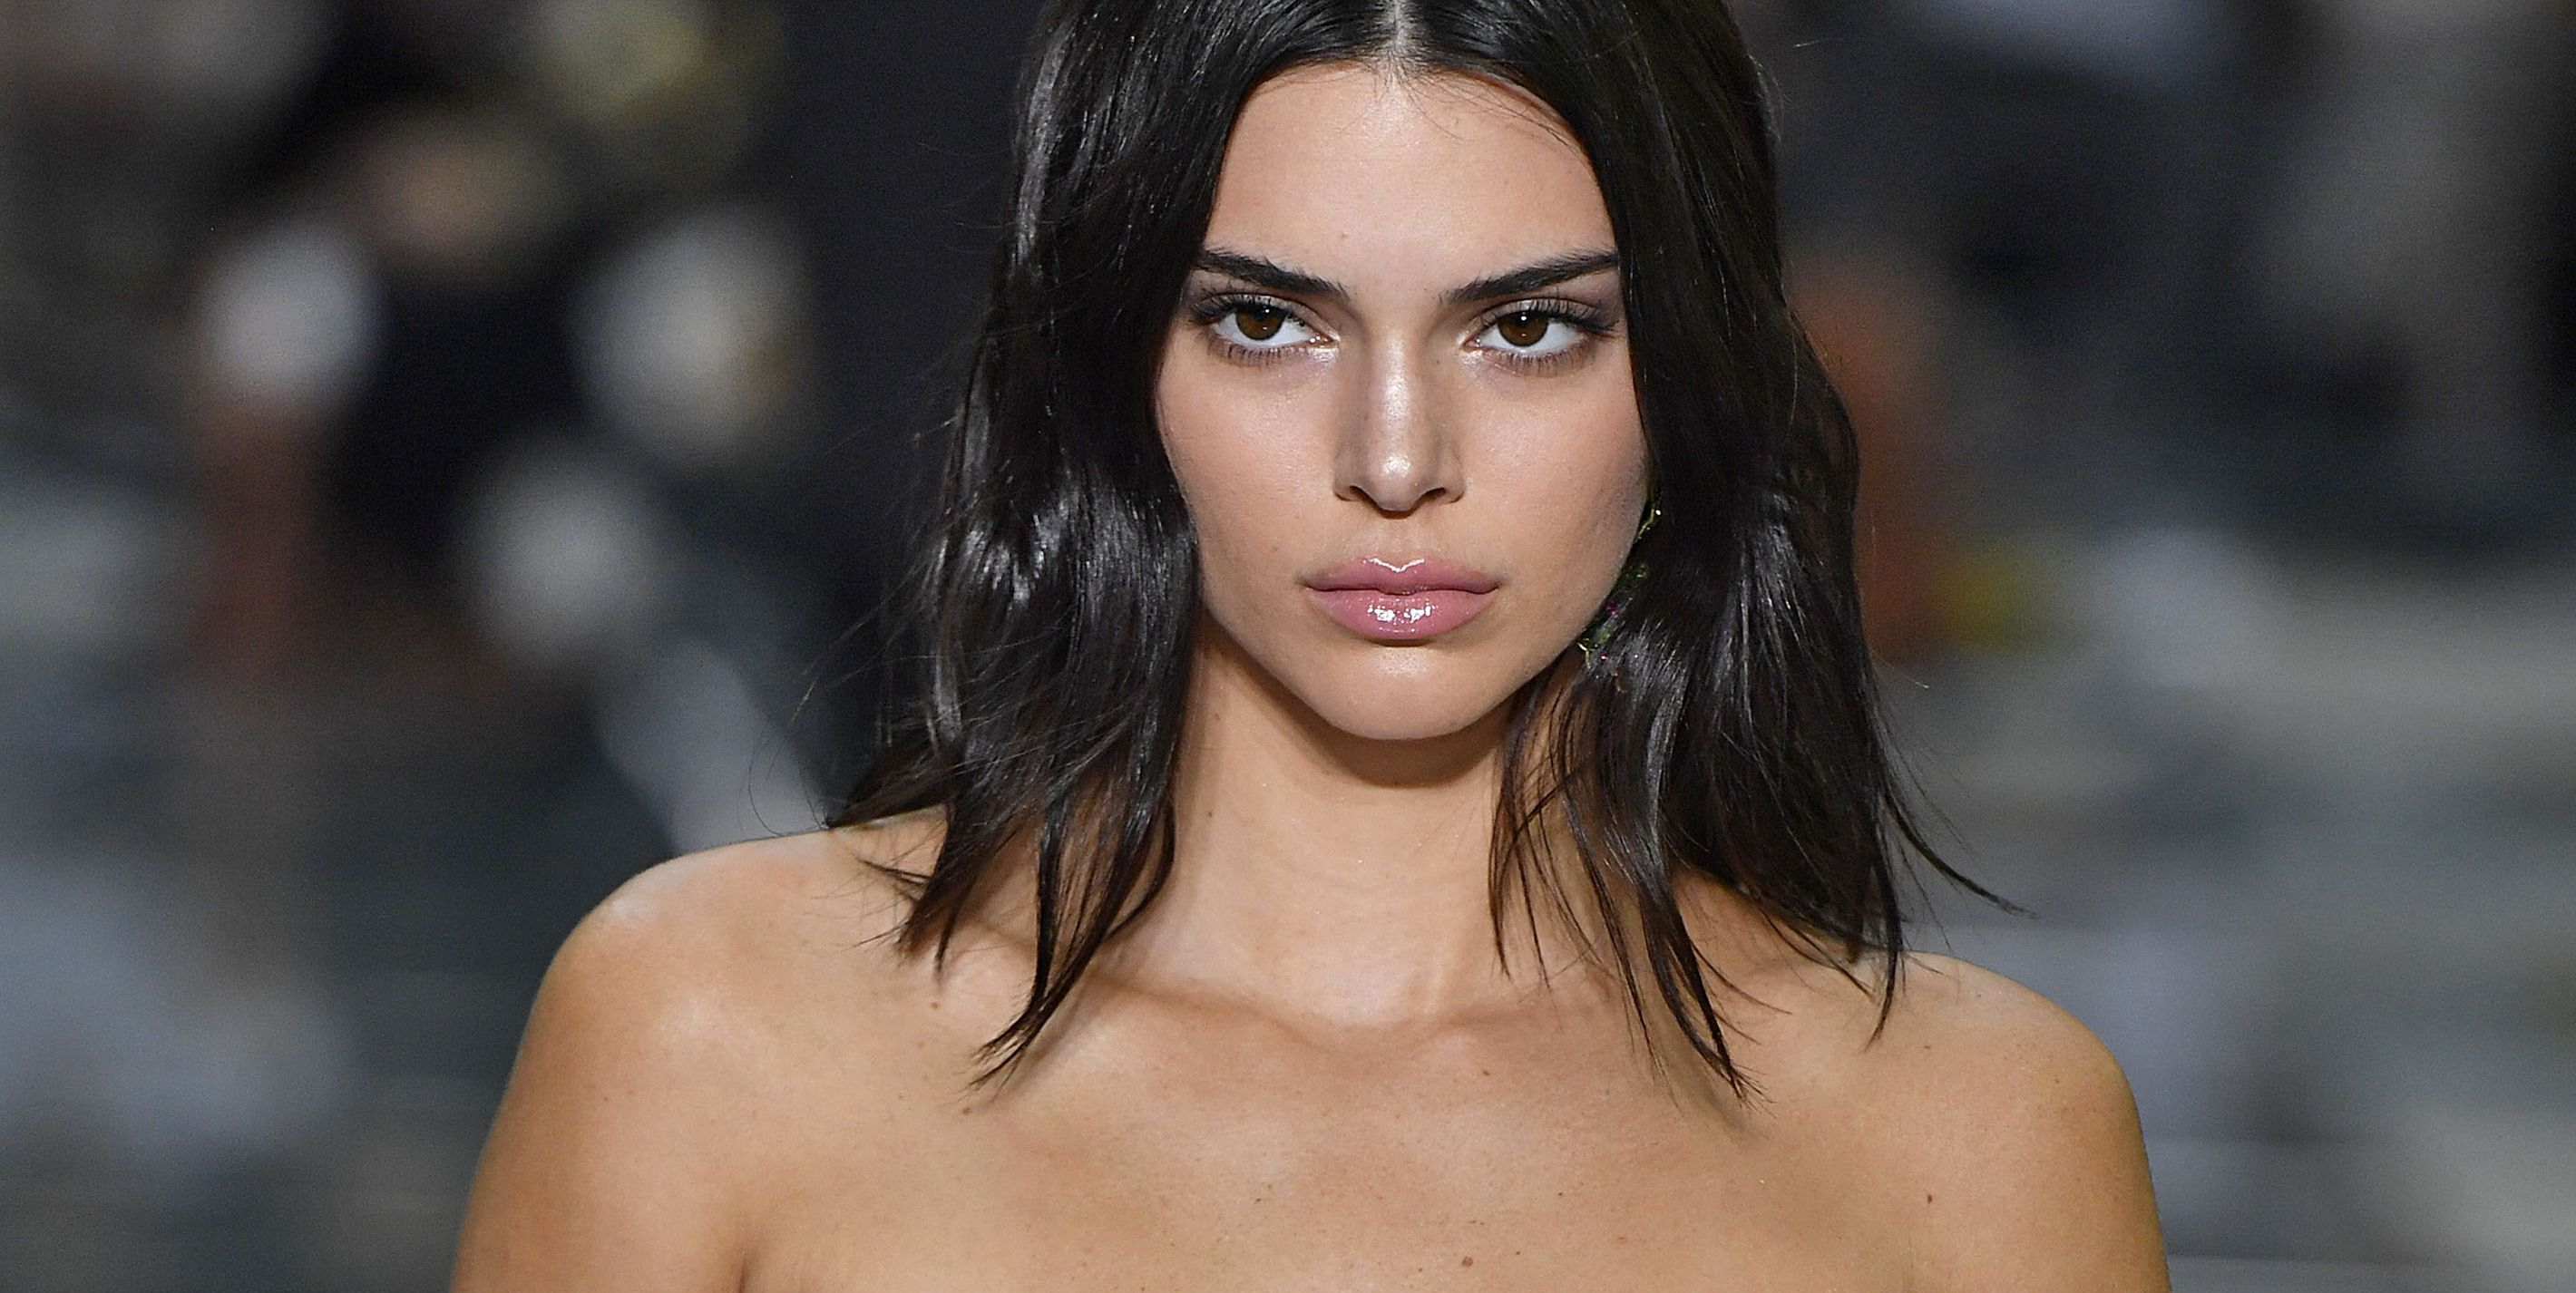 Kendall Jenner Just Freed the Nipple in a Gorgeous Topless Photo Shoot